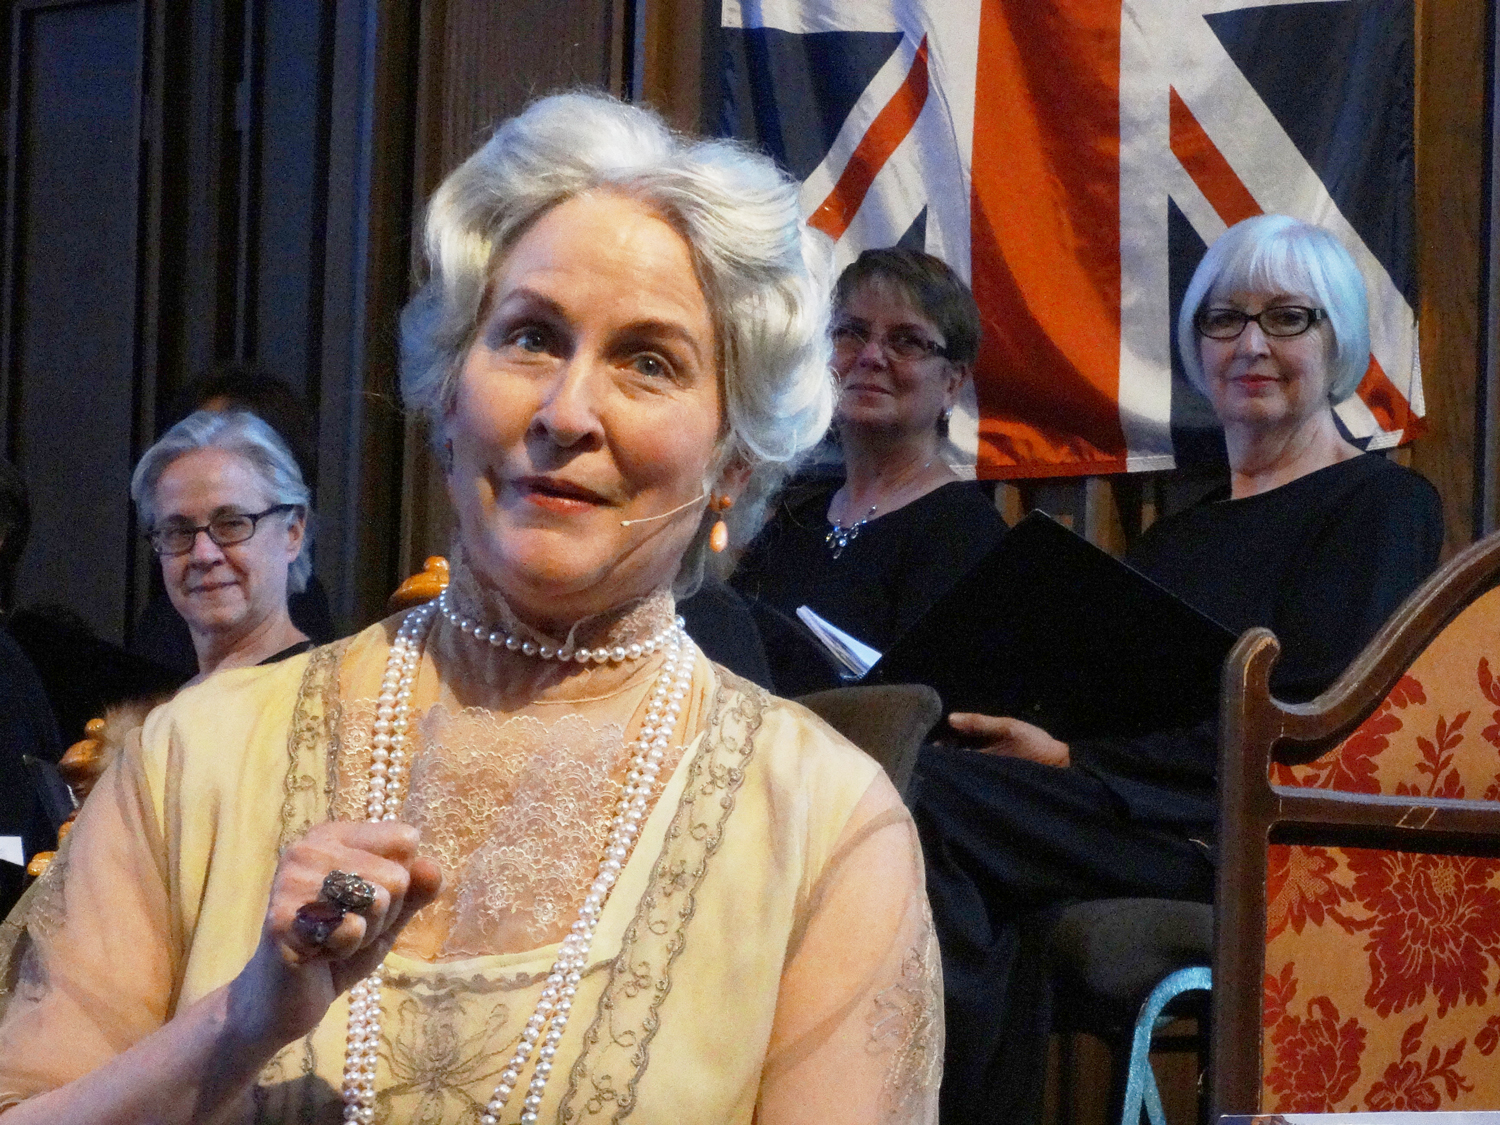 Bach Society of Dayton presents The Music of Downton Abbey